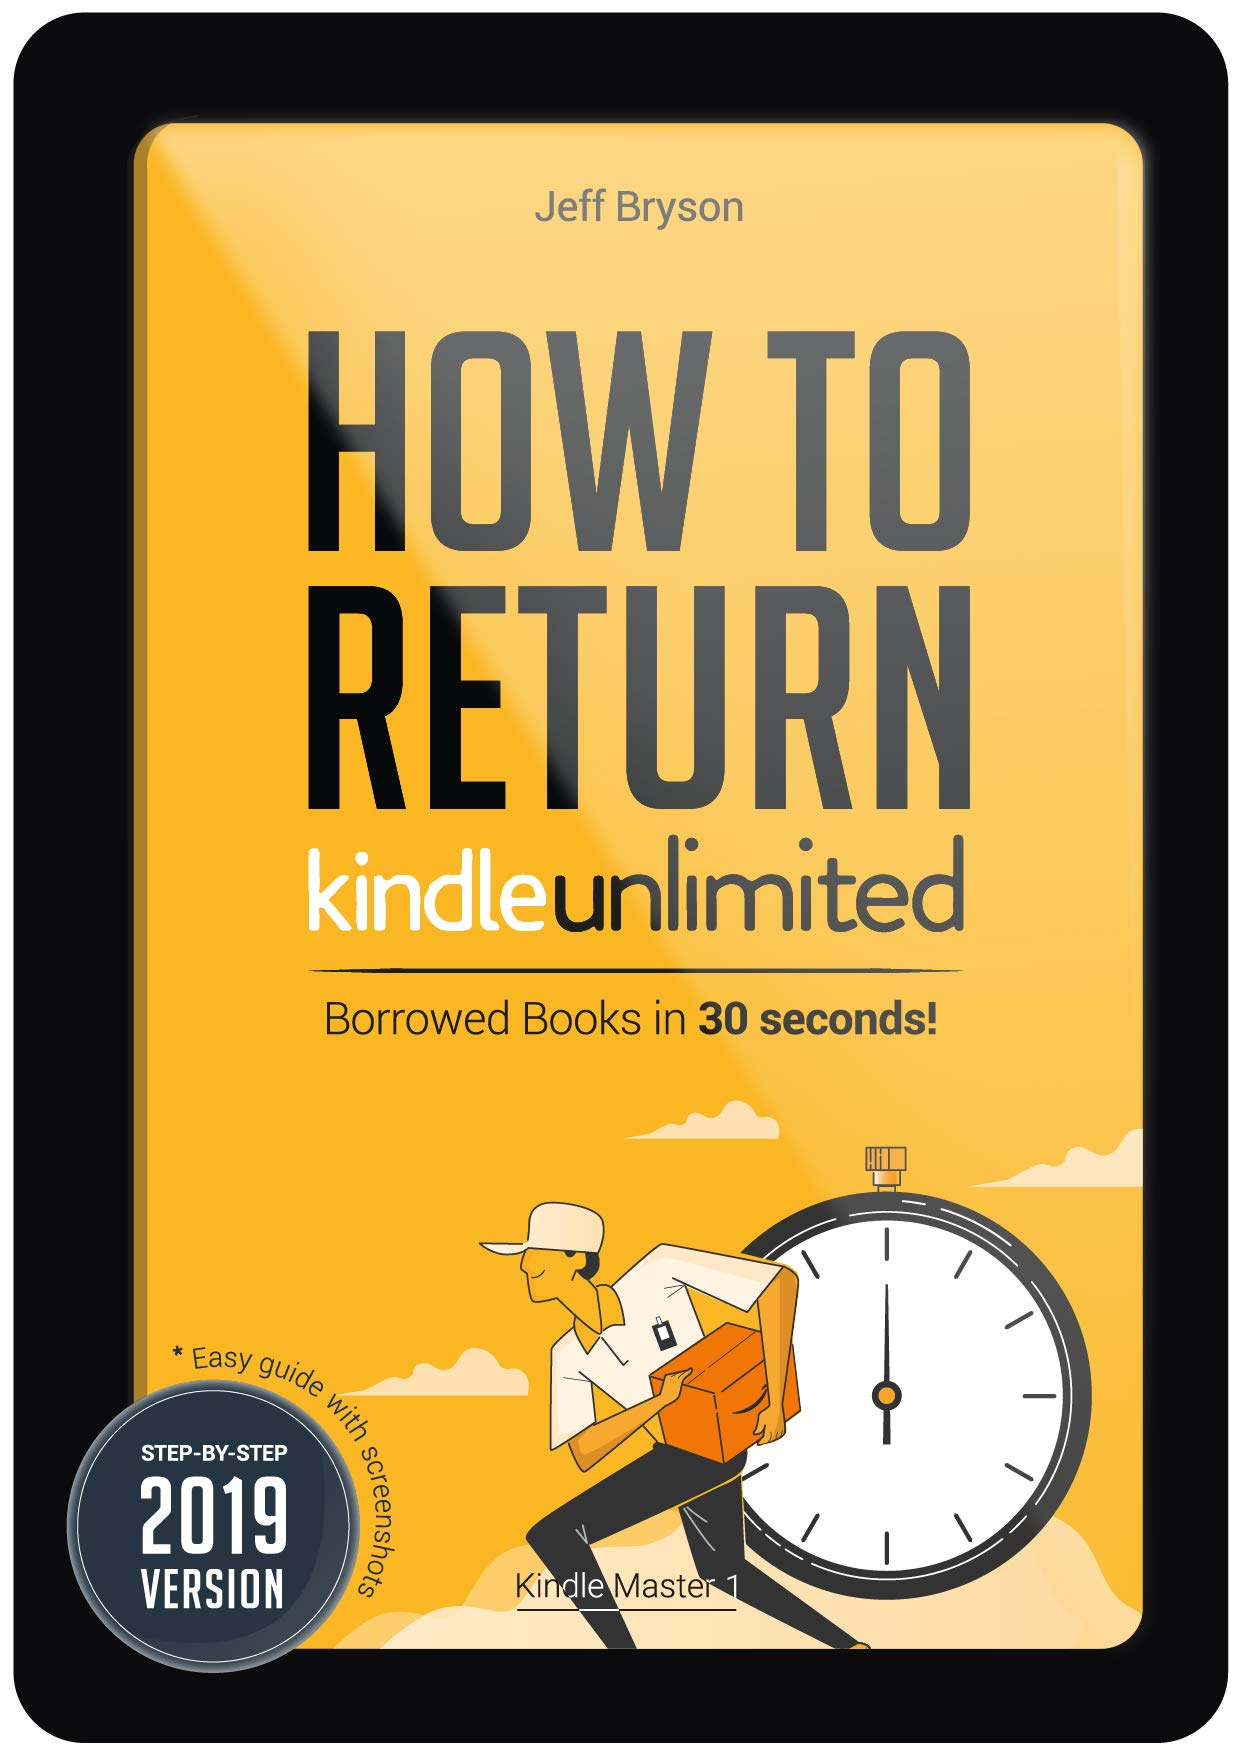 How To Return Kindle Unlimited Borrowed Books In 30 Seconds   Step By Step Easy Guide With Screenshots On Return Your Books Off Your Kindle Reader Fire ...  Kindle Master Book 1   English Edition